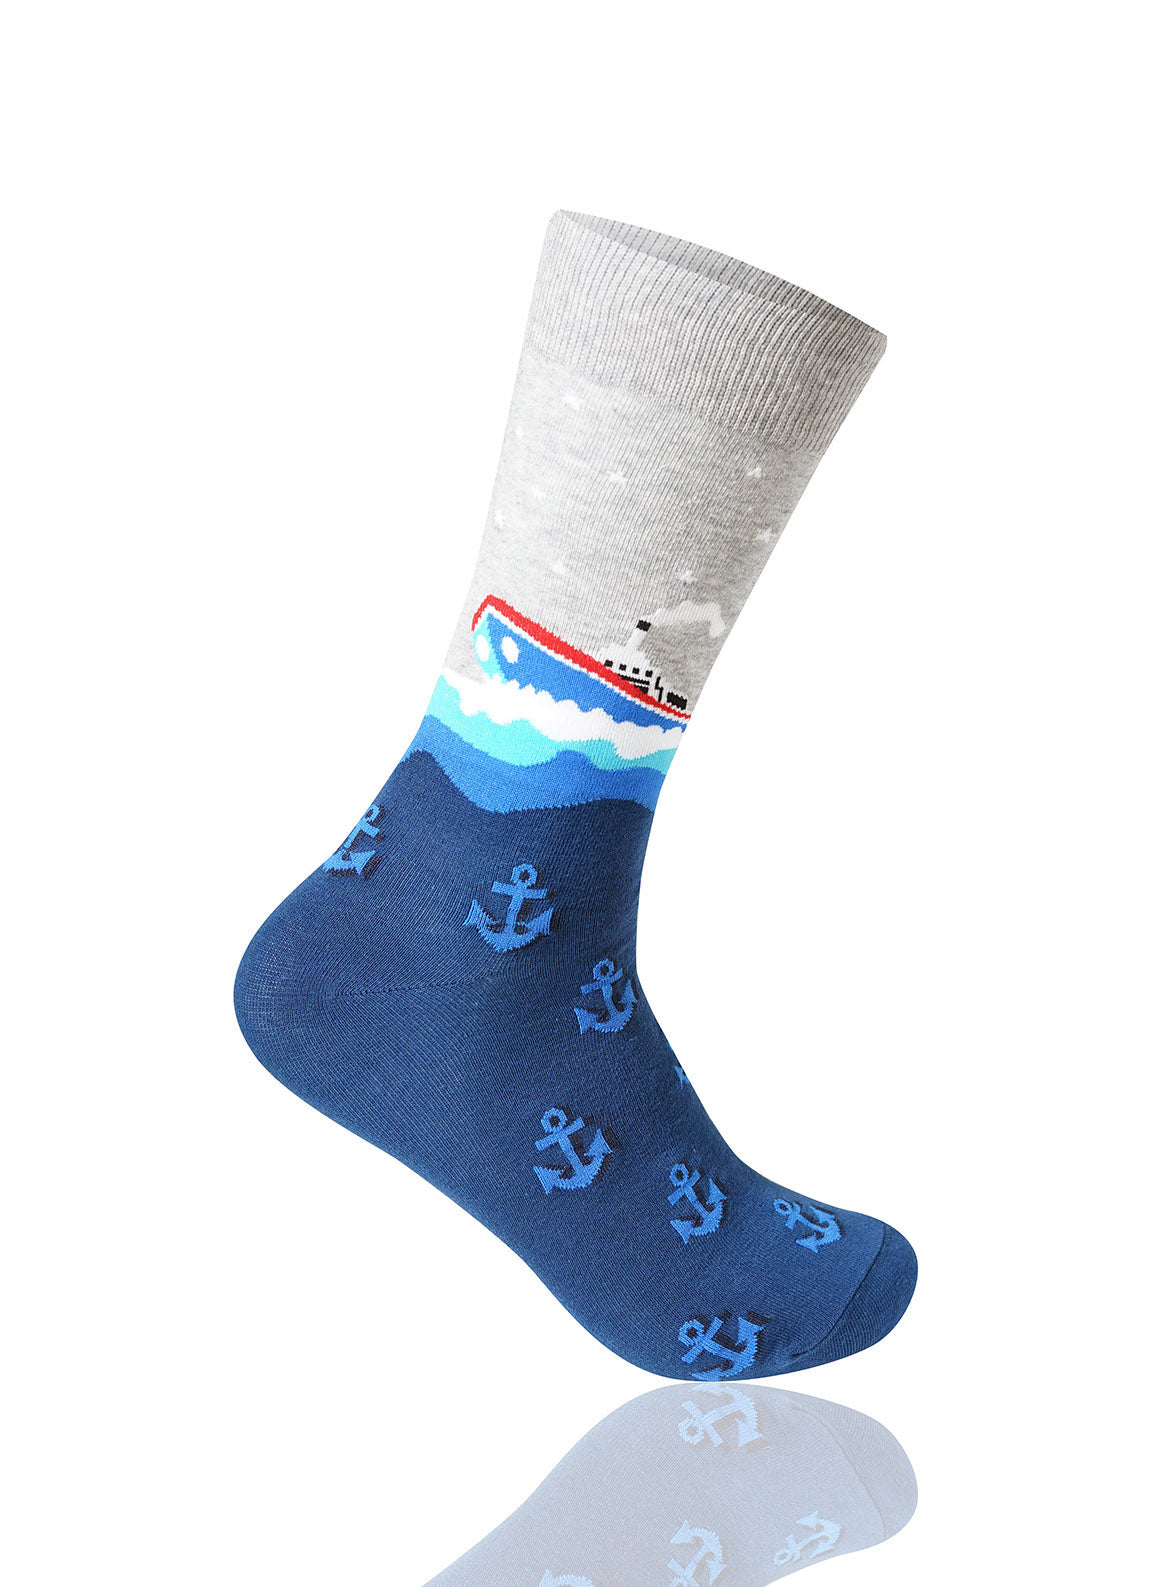 NAVY Steamboat Novelty Socks - URBANCREWS